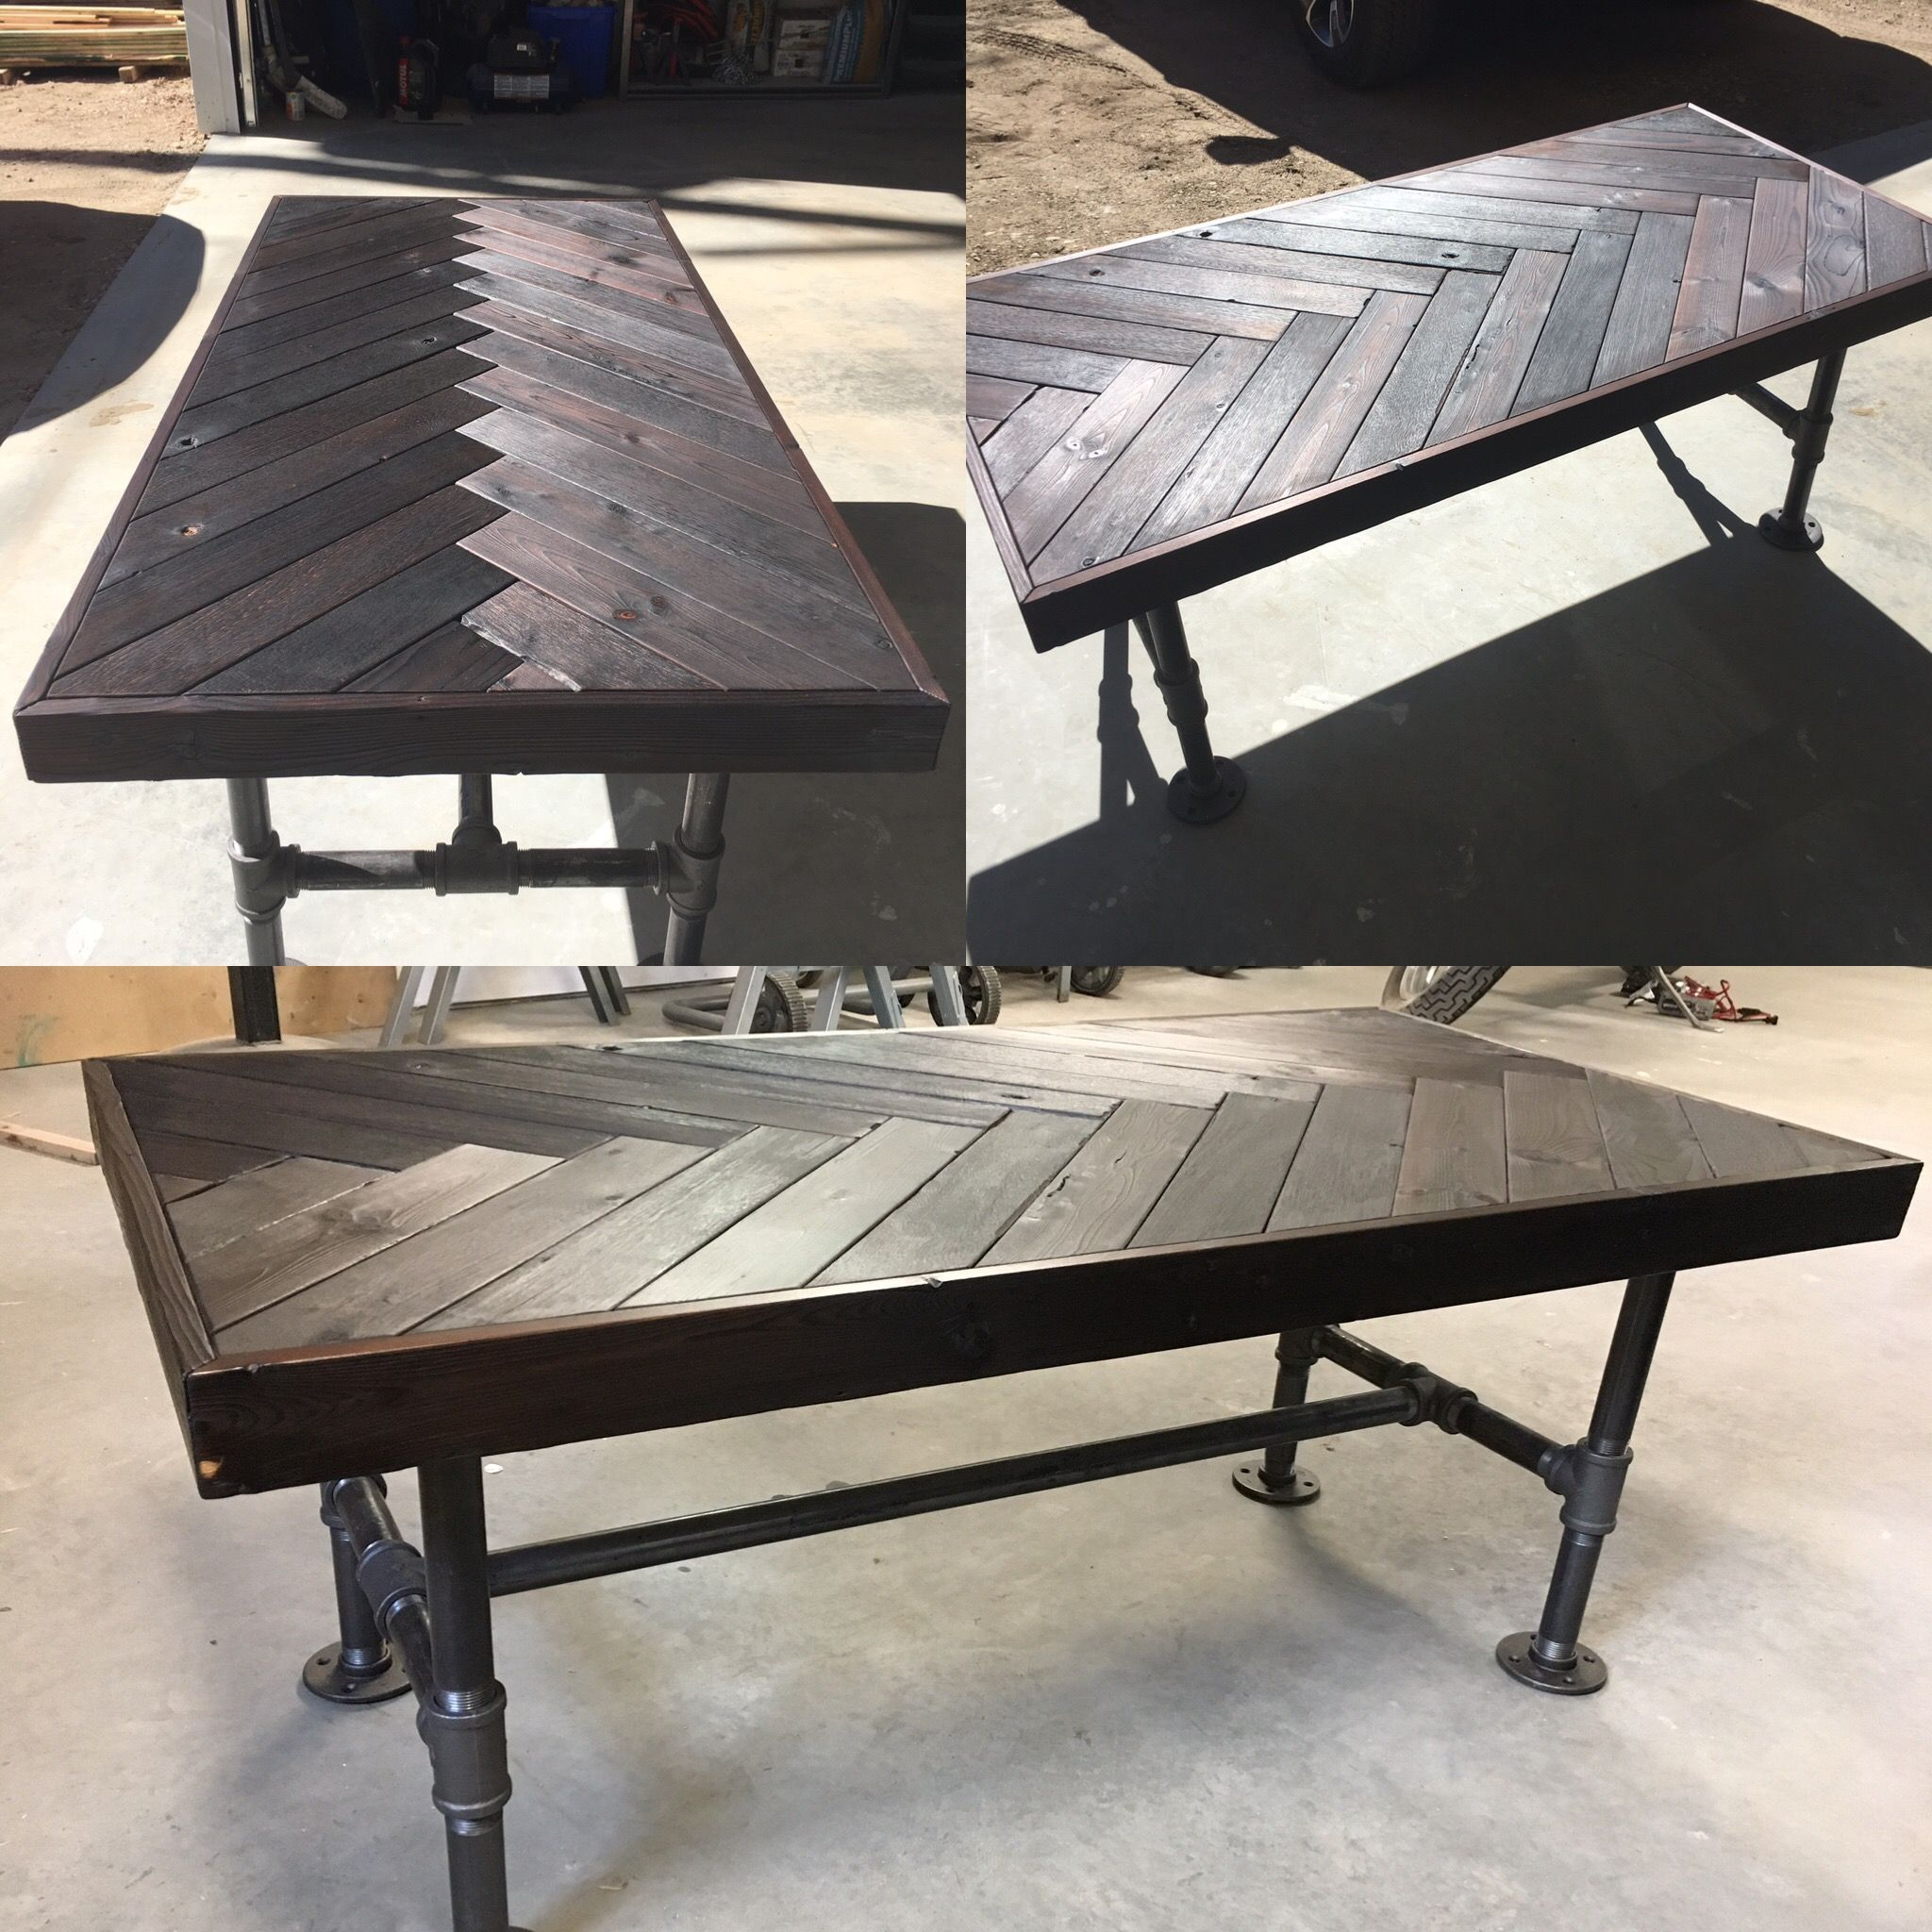 Shou sugi ban herringbone industrial coffee table